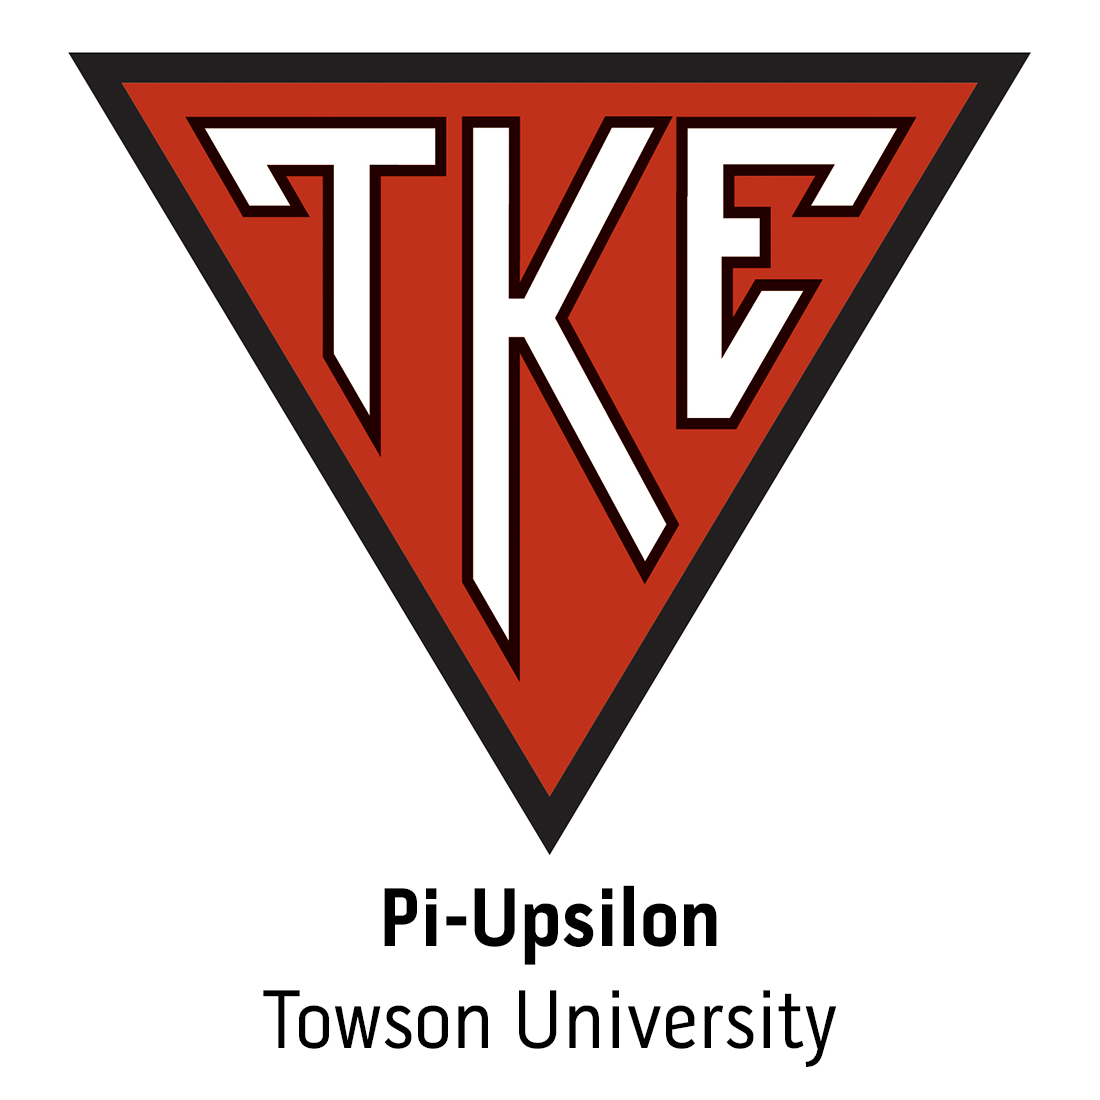 Pi-Upsilon Chapter at Towson University